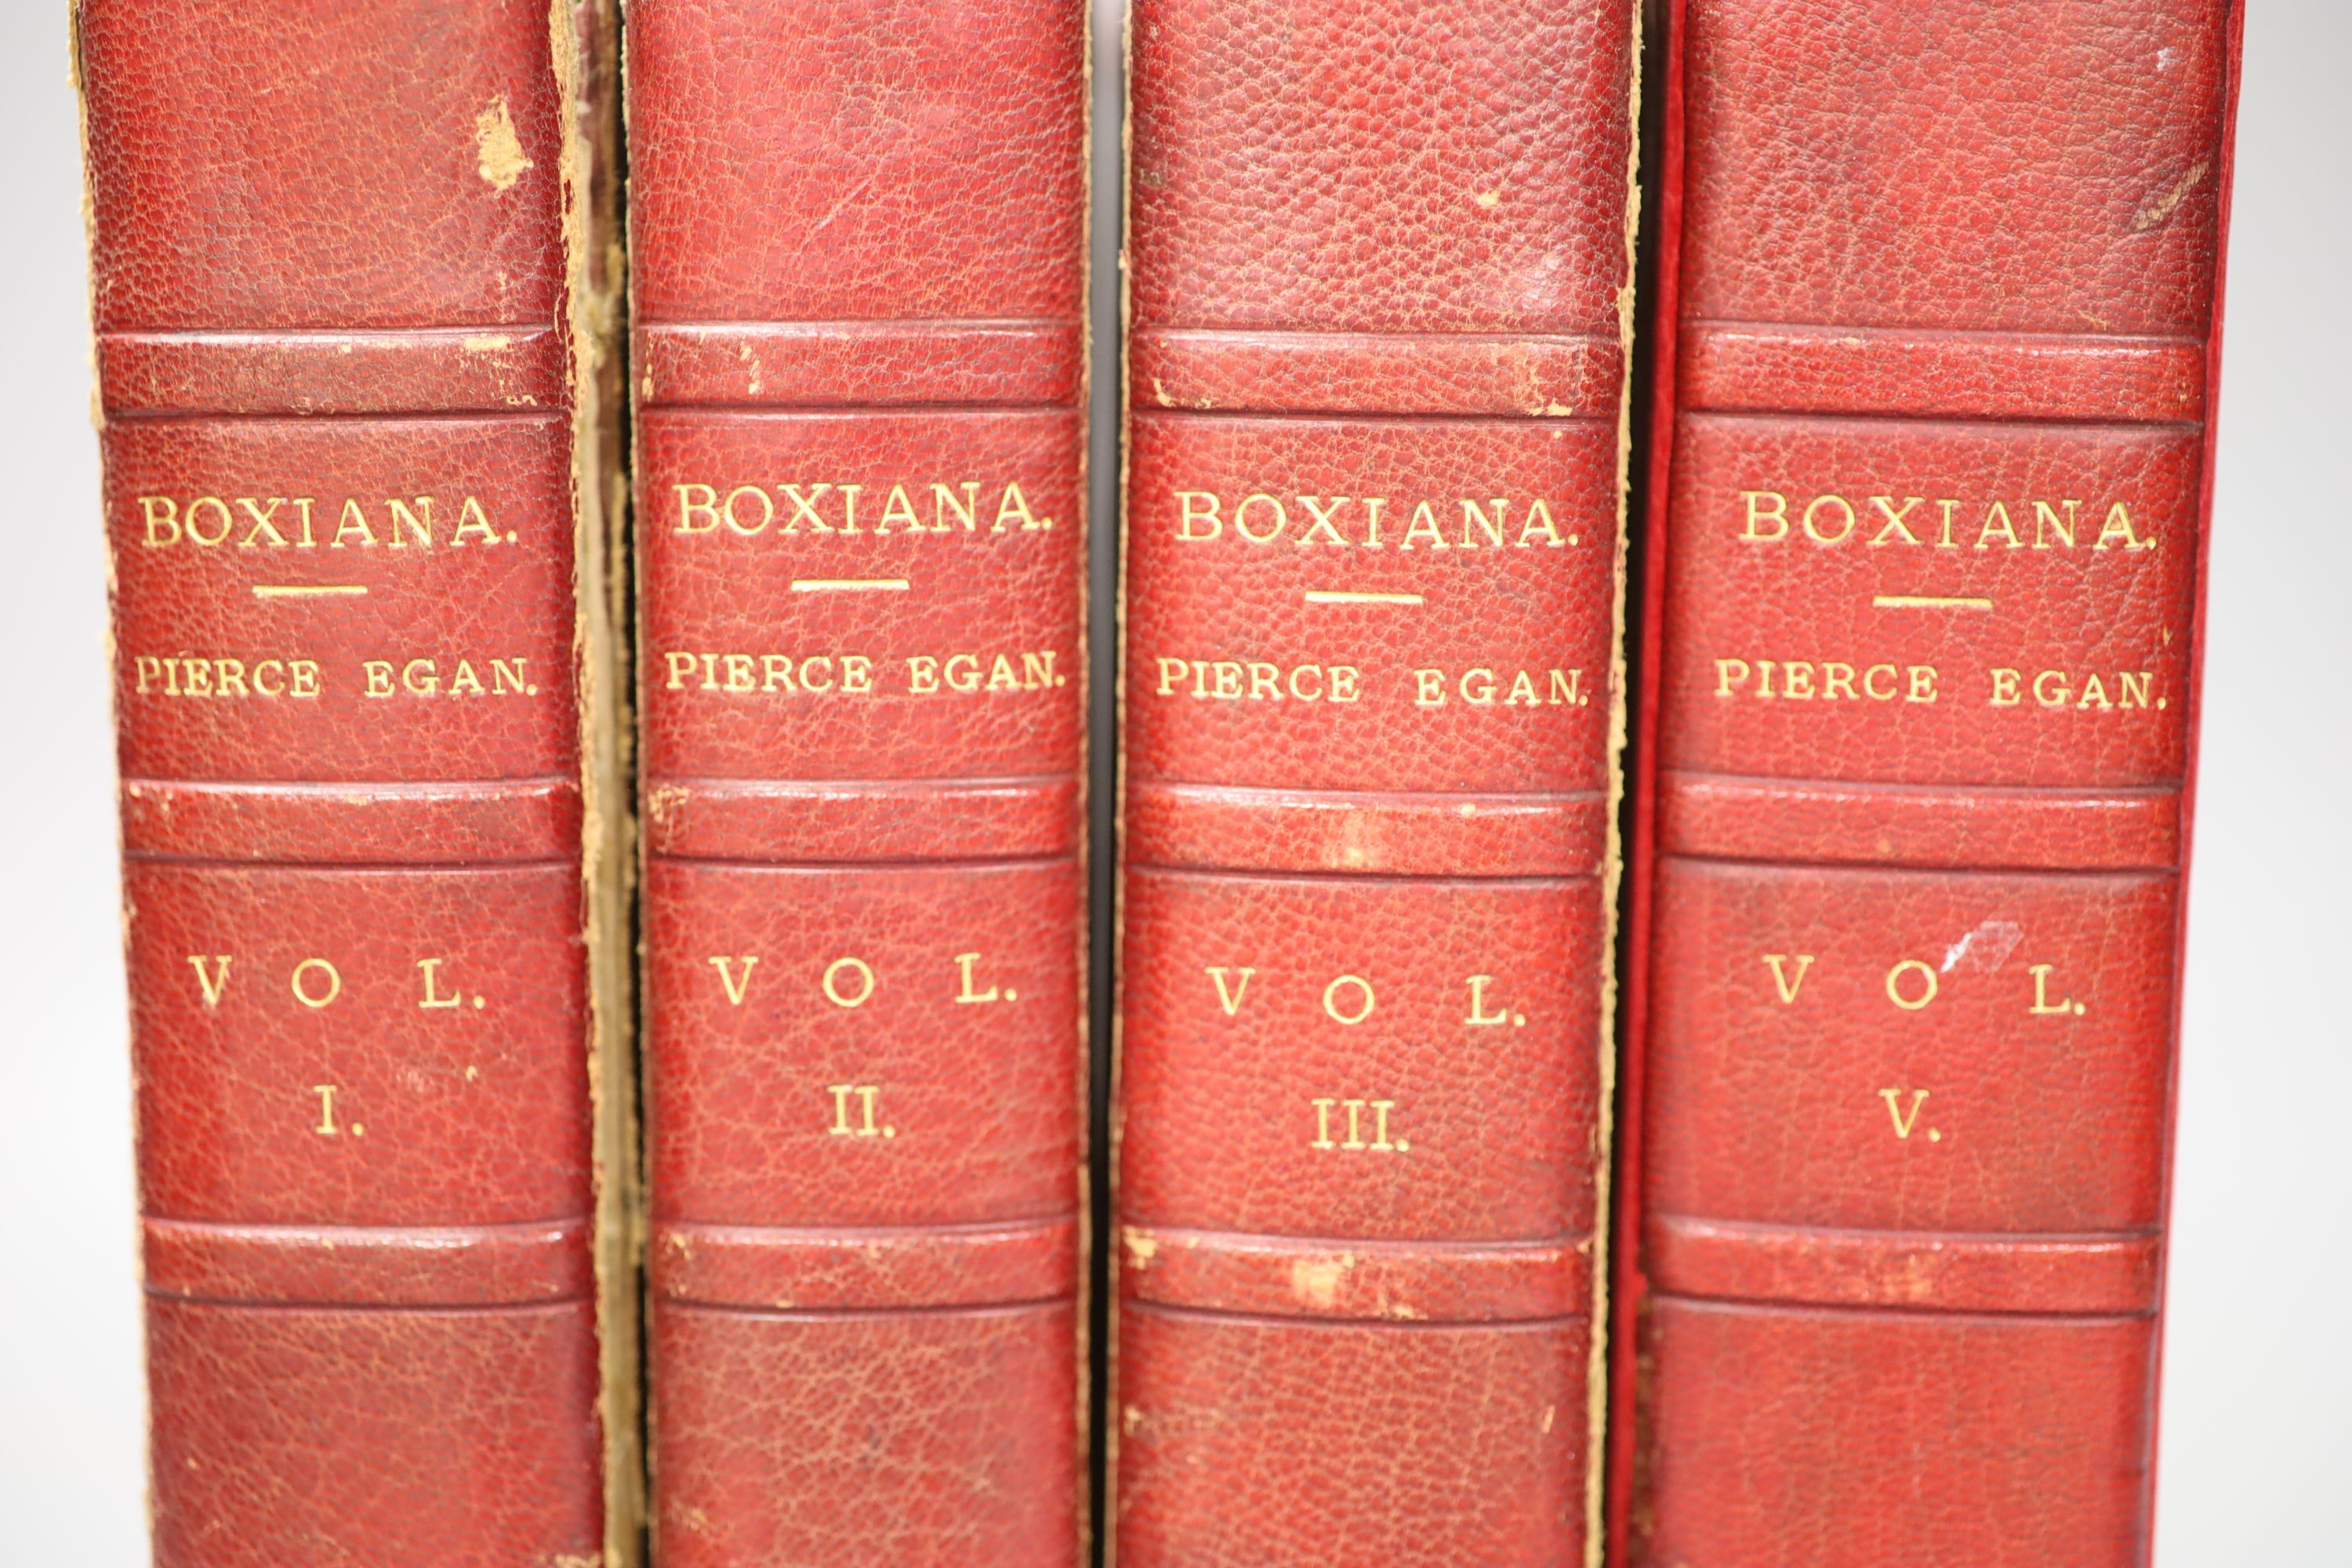 Egan, Pierce - Boxiana, 4 vols, 1818 and a book plate - Image 3 of 3